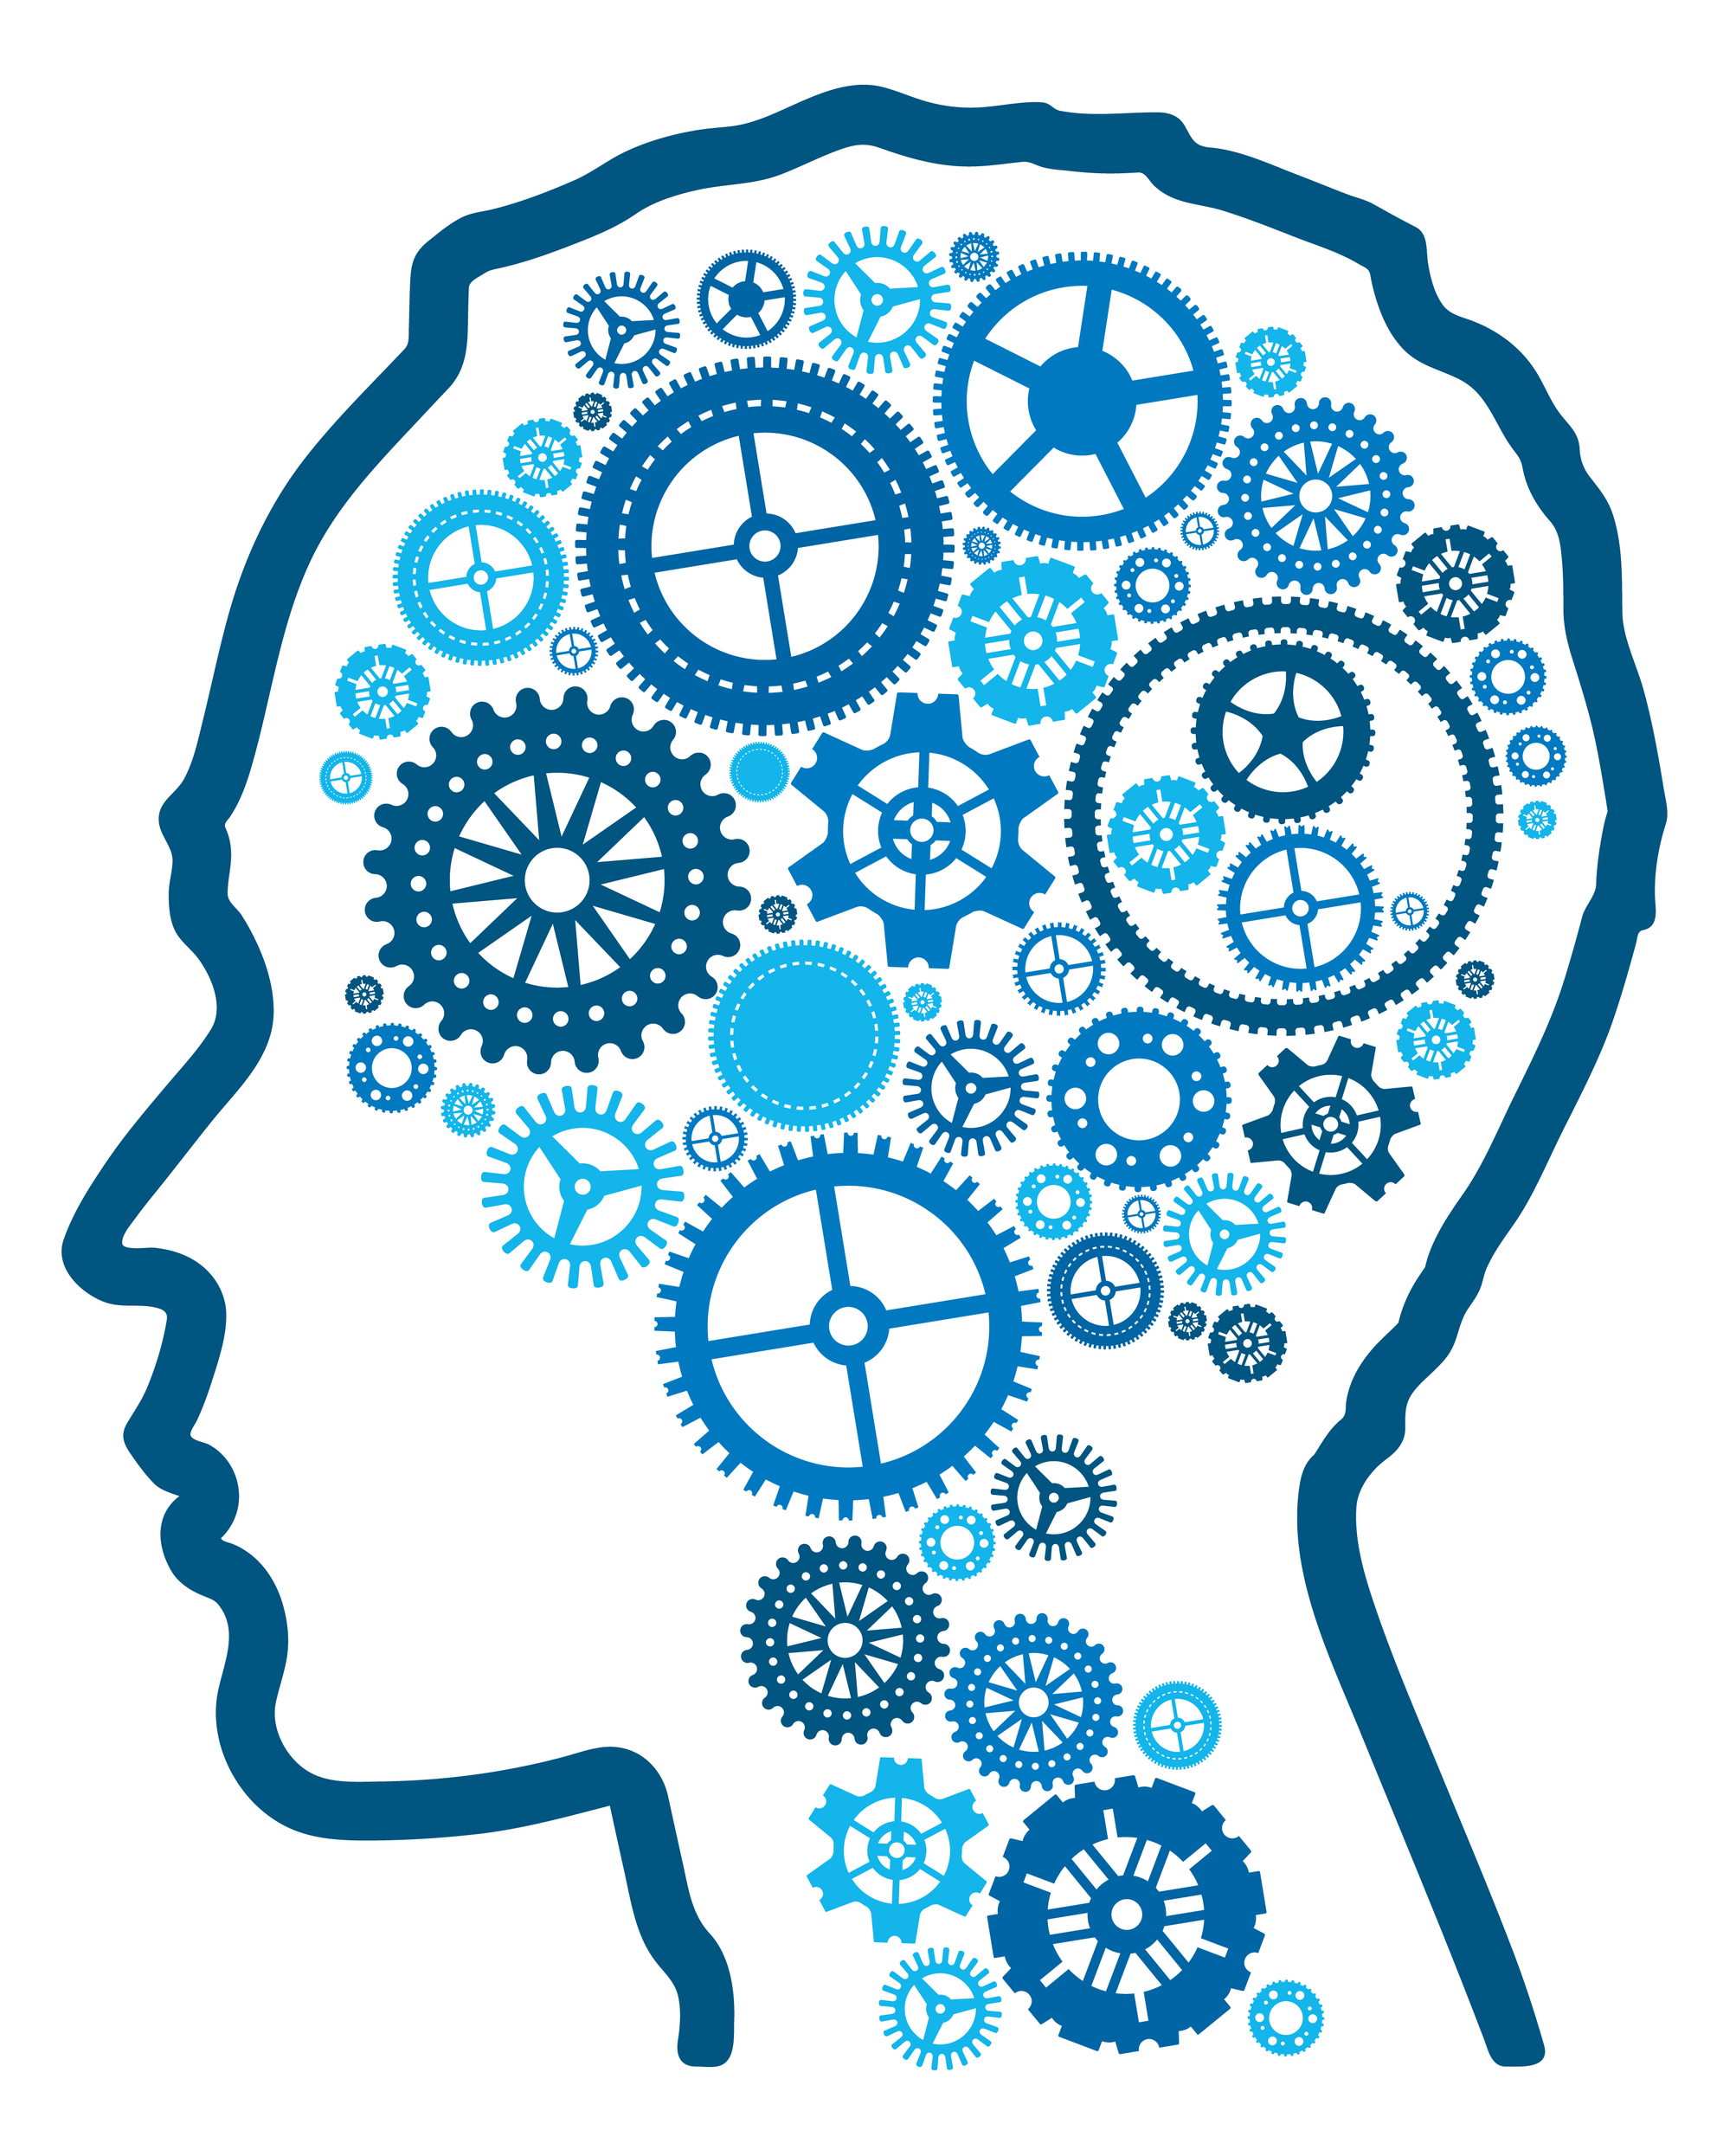 Mind Graphic, cogs